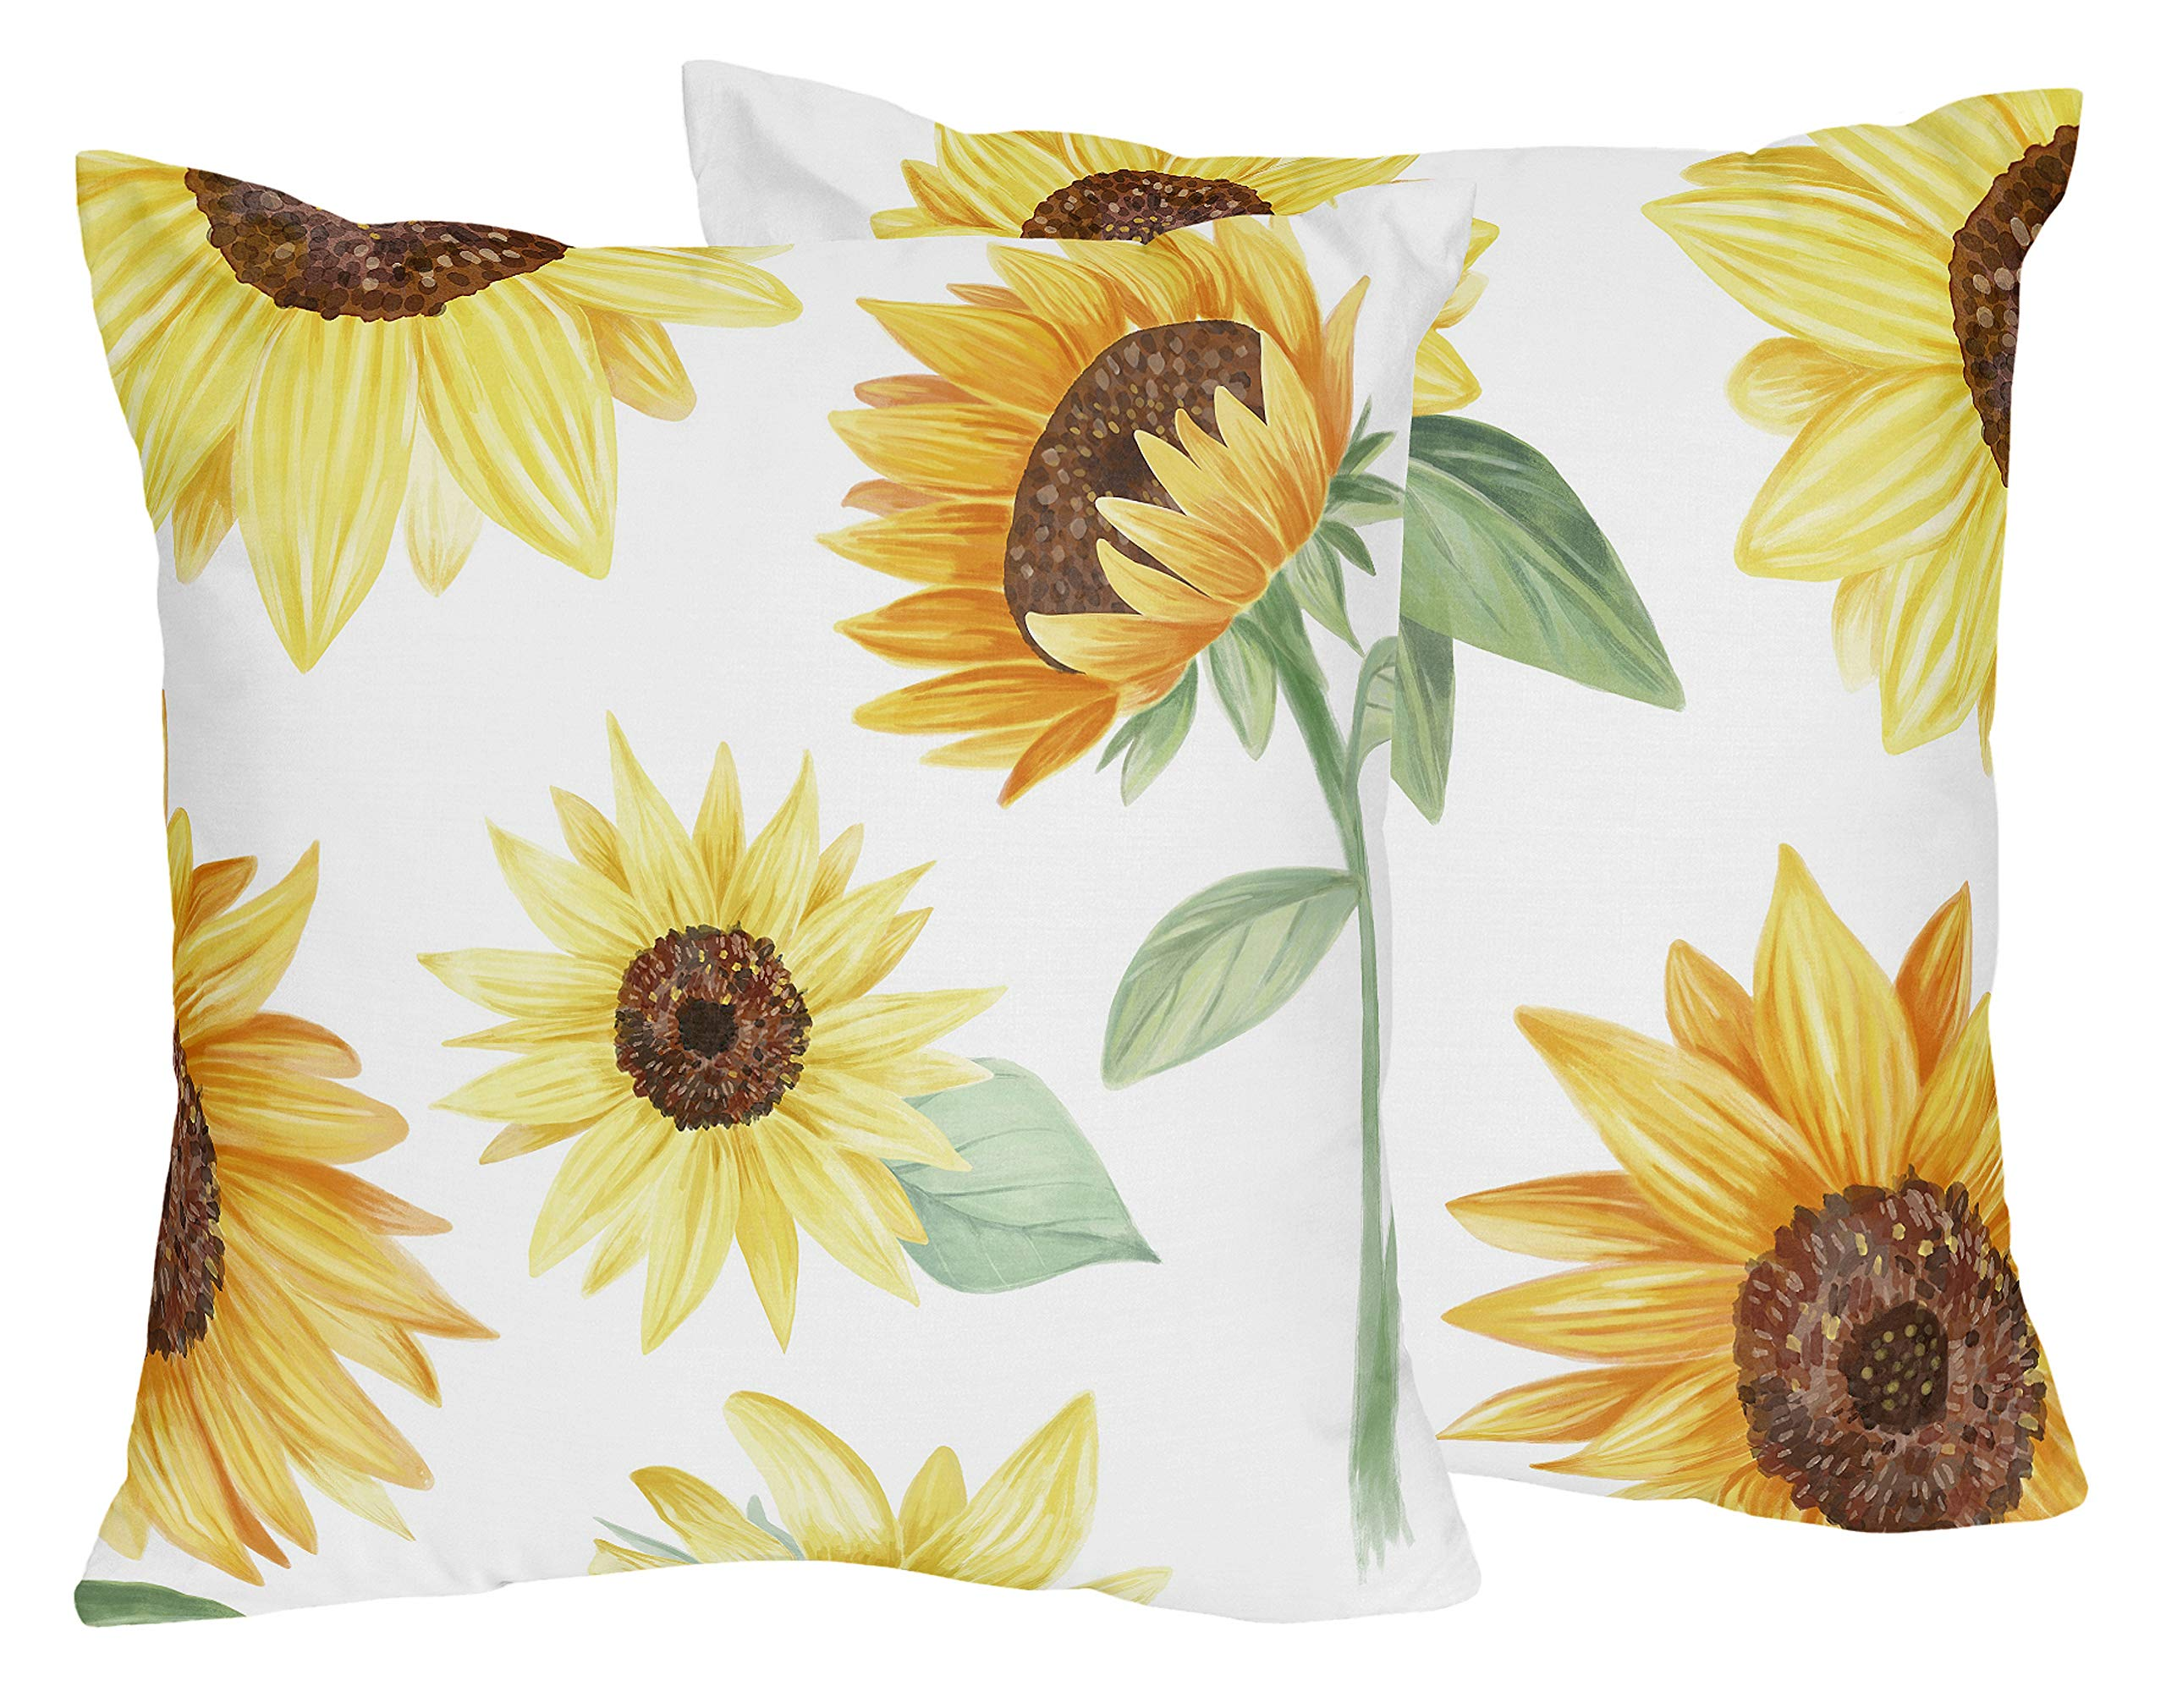 Sweet Jojo Designs Yellow, Green and White Sunflower Boho Floral Decorative Accent Throw Pillows - Set of 2 - Farmhouse Watercolor Flower, 18 in. x 18 in. Each in. Each, Orange